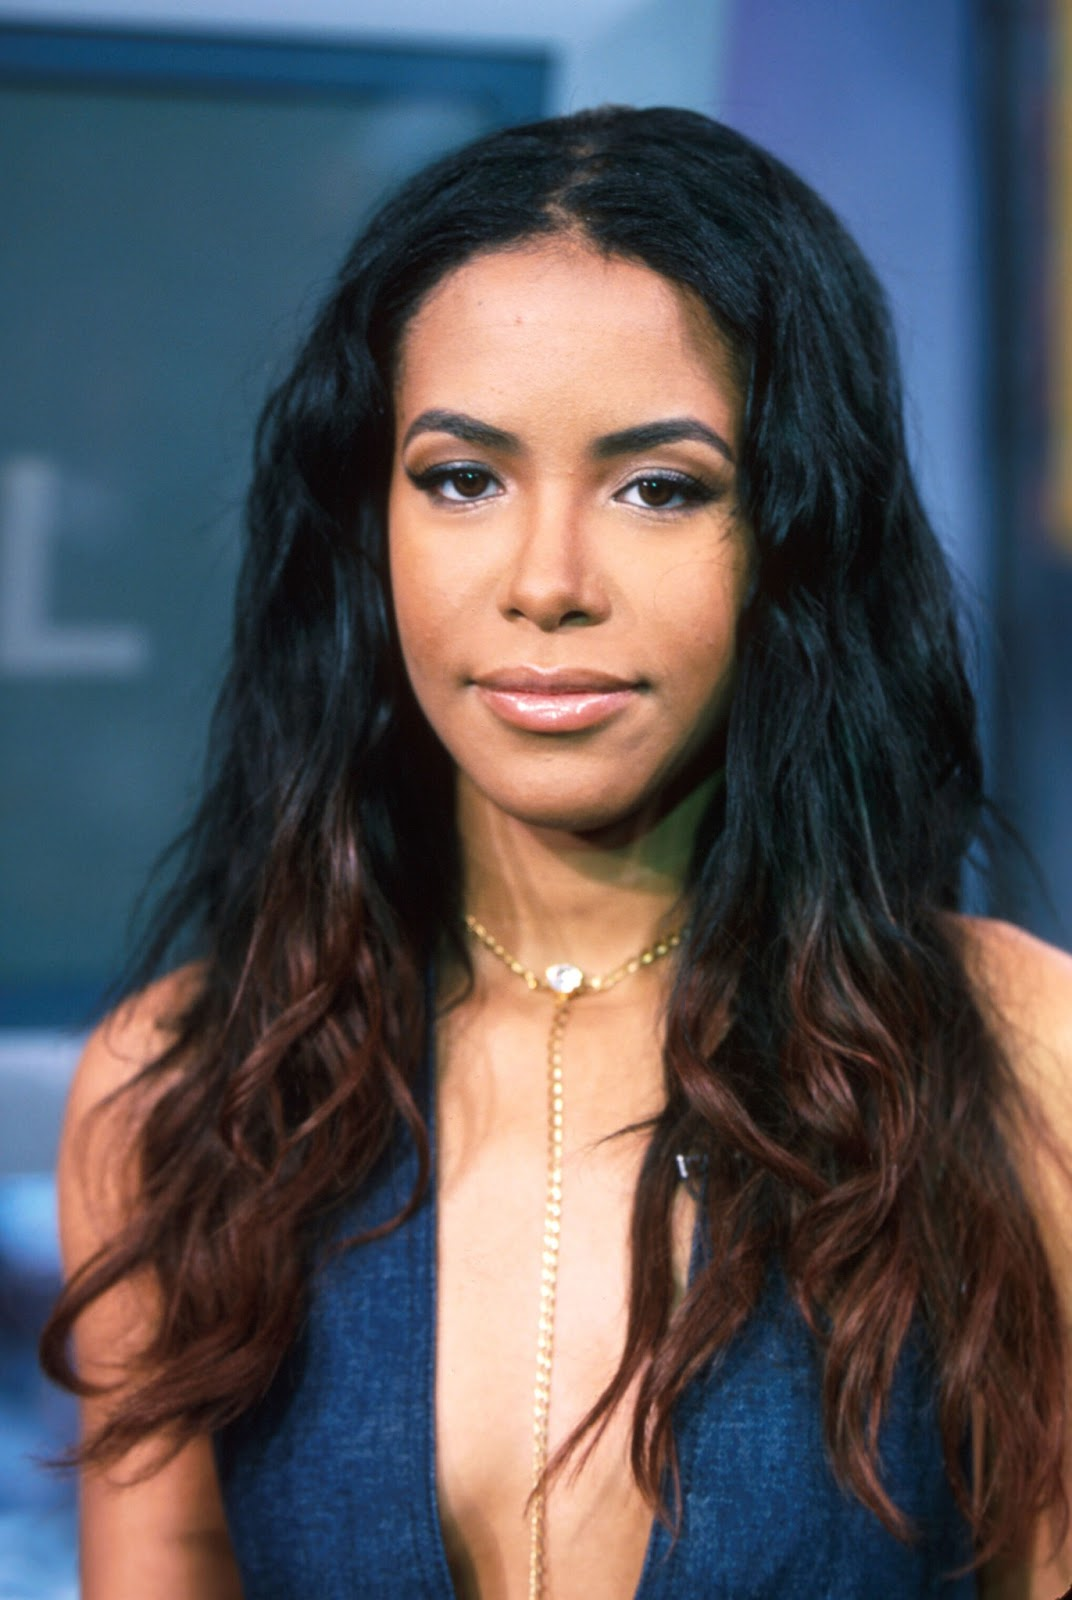 aaliyah - photo #16